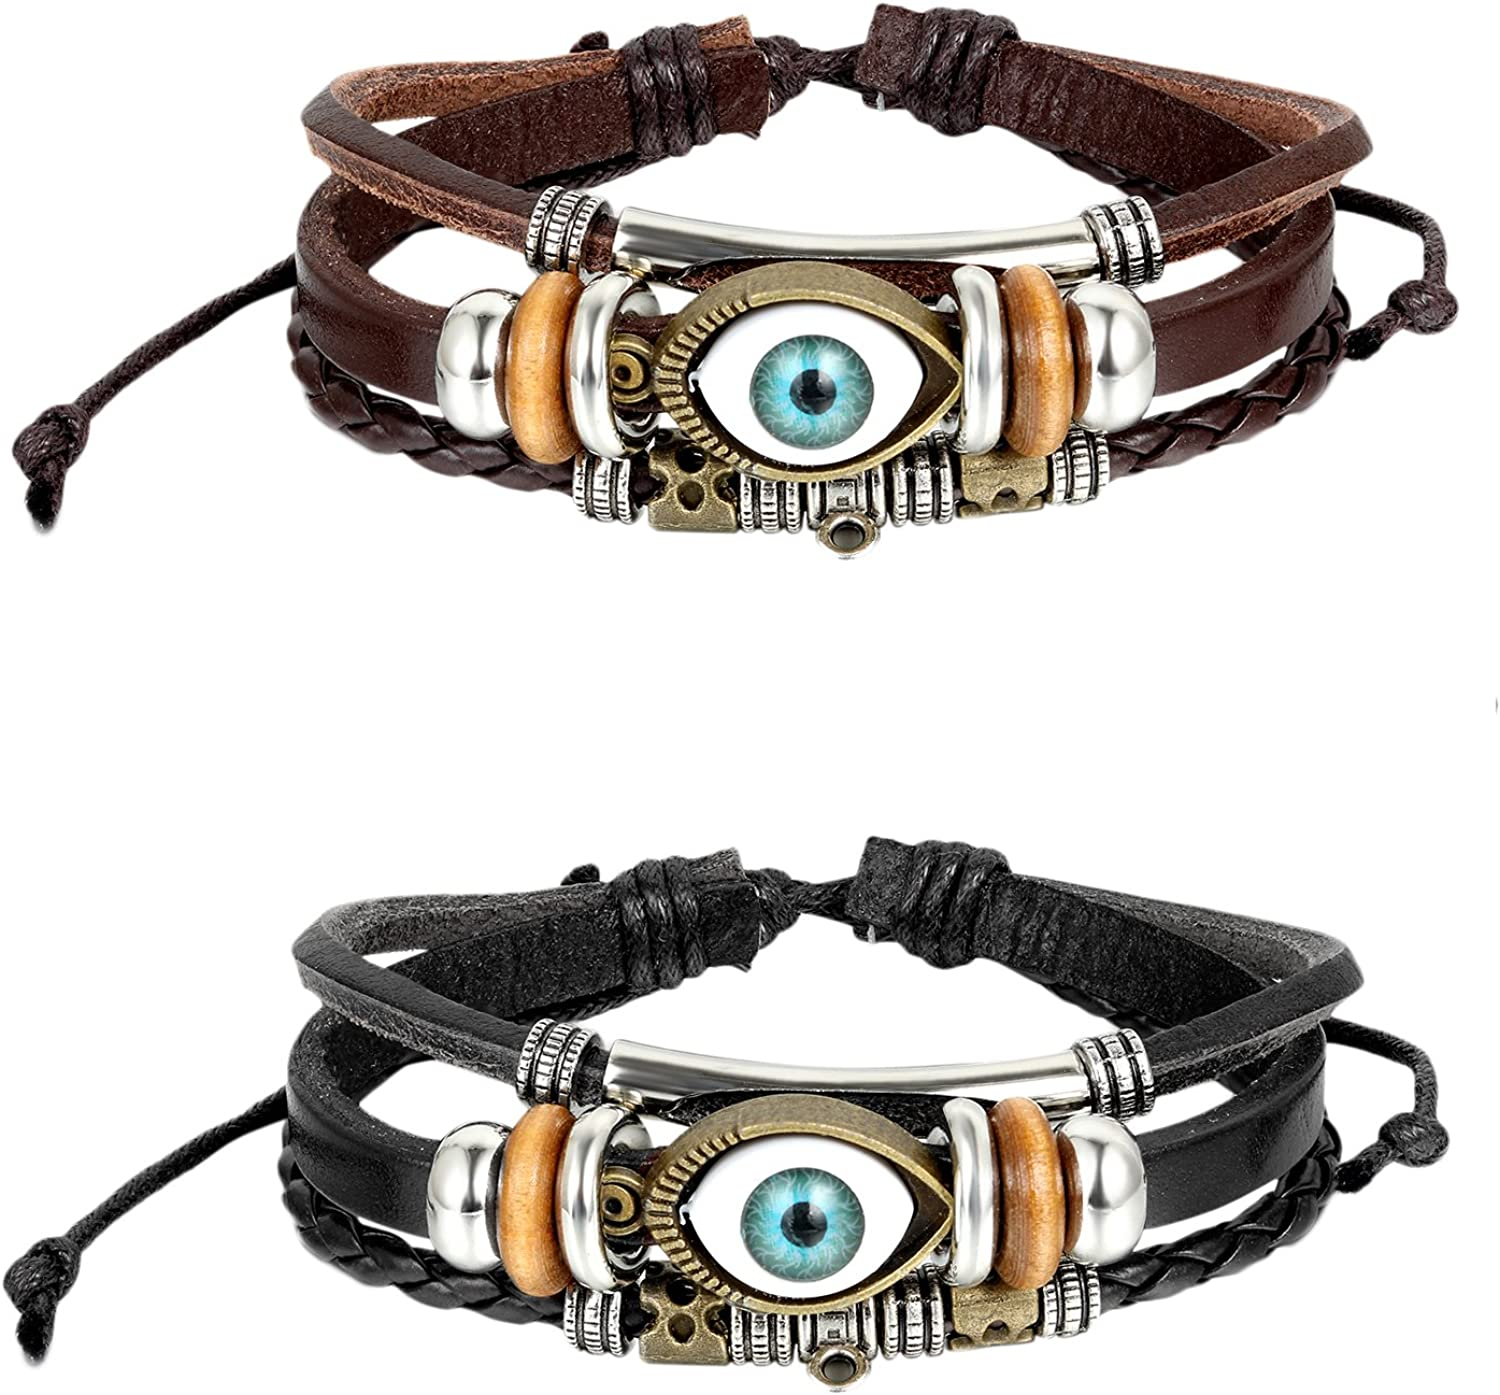 OIDEA 2pcs Mes Womens Good Luck Blue Evil Eye Cuff Bangle Bracelet,Black,Brown,Size Adjustable 8.1 to 9Inch